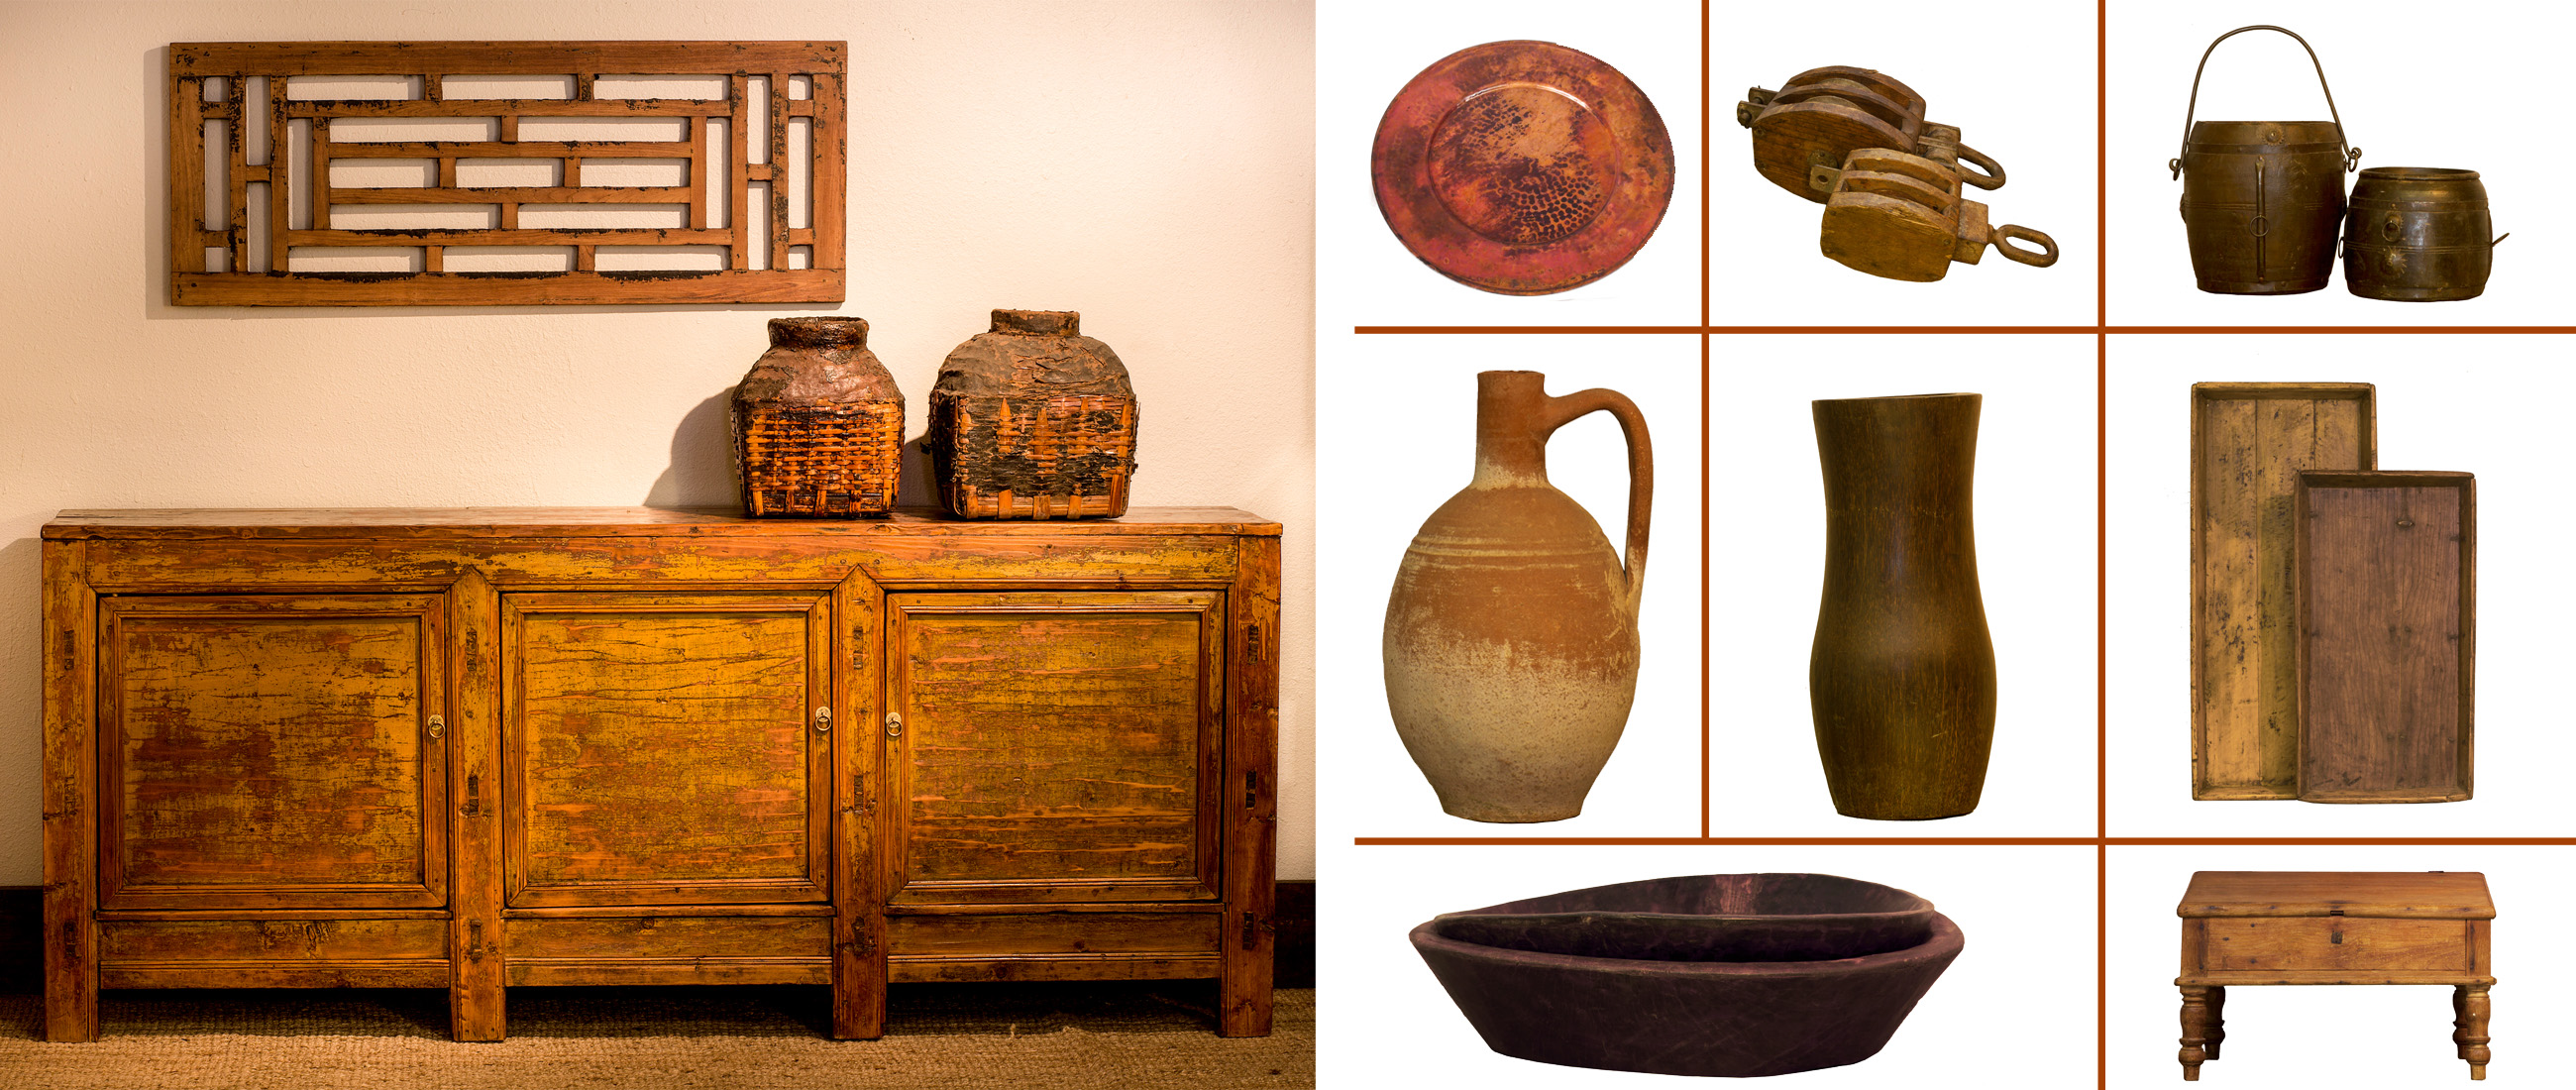 Indus Design Imports The Largest Wholesale Rustic And